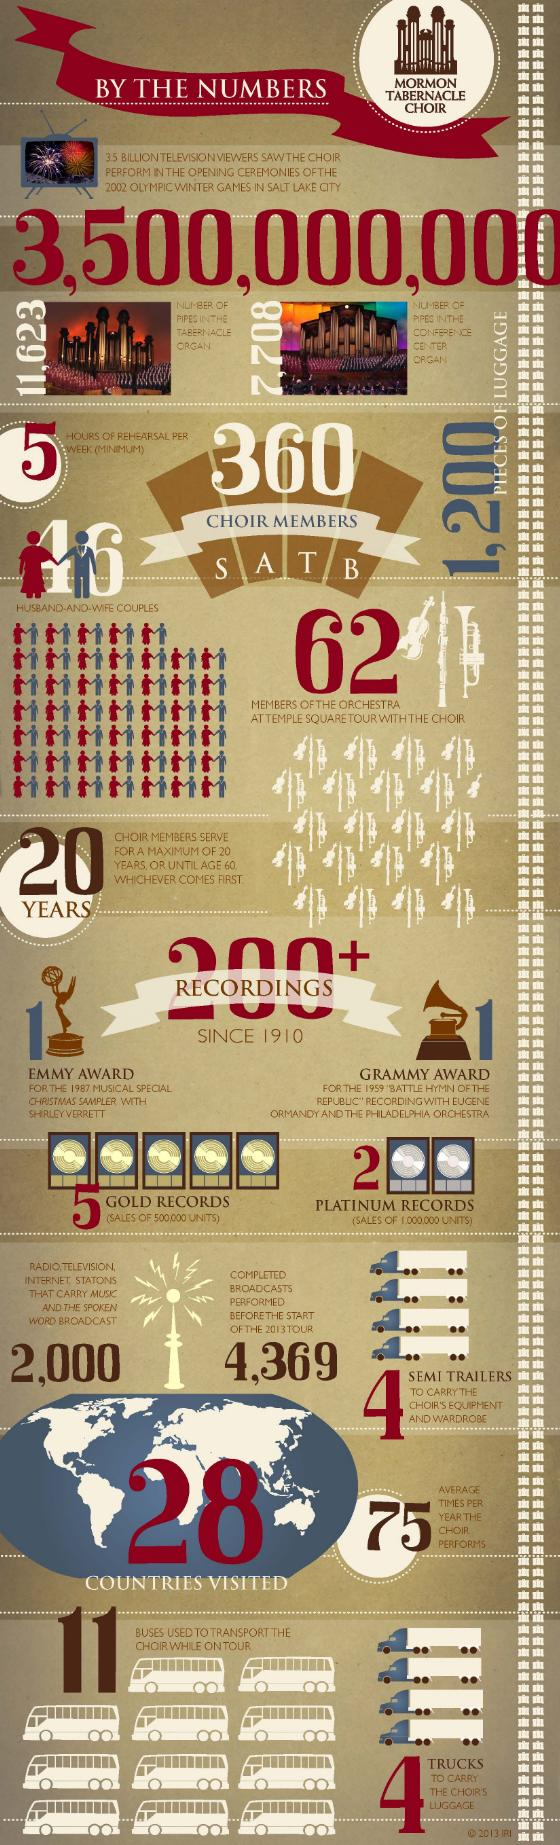 Infographic: Mormon Tabernacle Choir